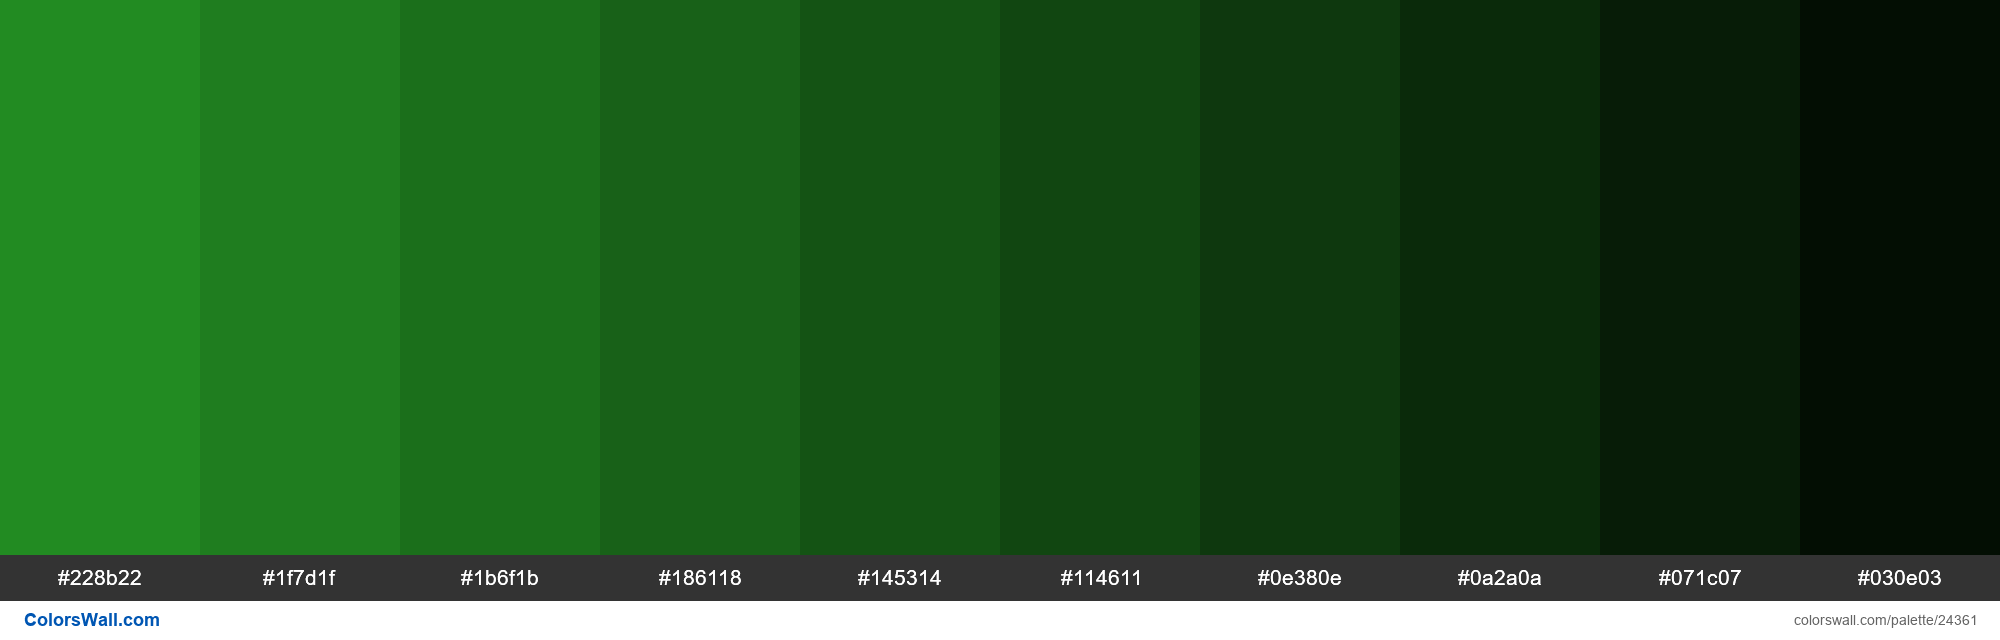 Shades of Forest Green #228B22 hex color - #24361